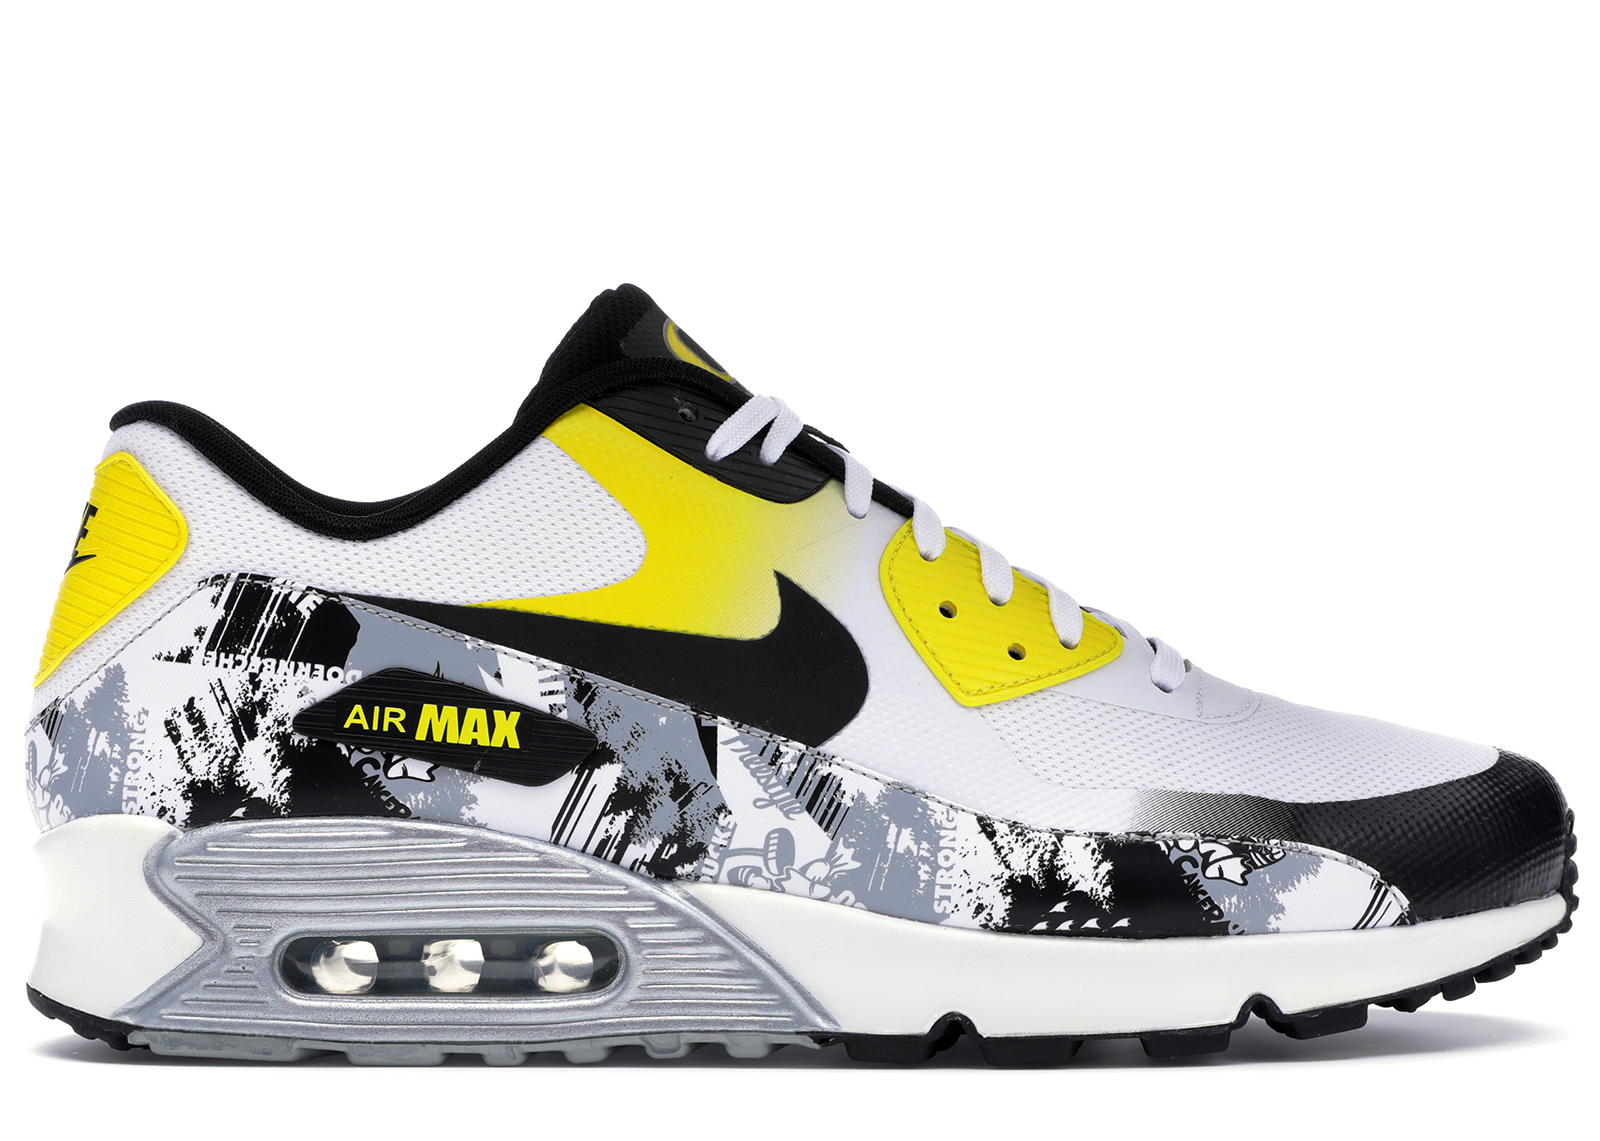 da8770ff3652 ... coupon for air max 90 ultra 2.0 doernbecher oregon ducks ah6830 100  fb381 08fc3